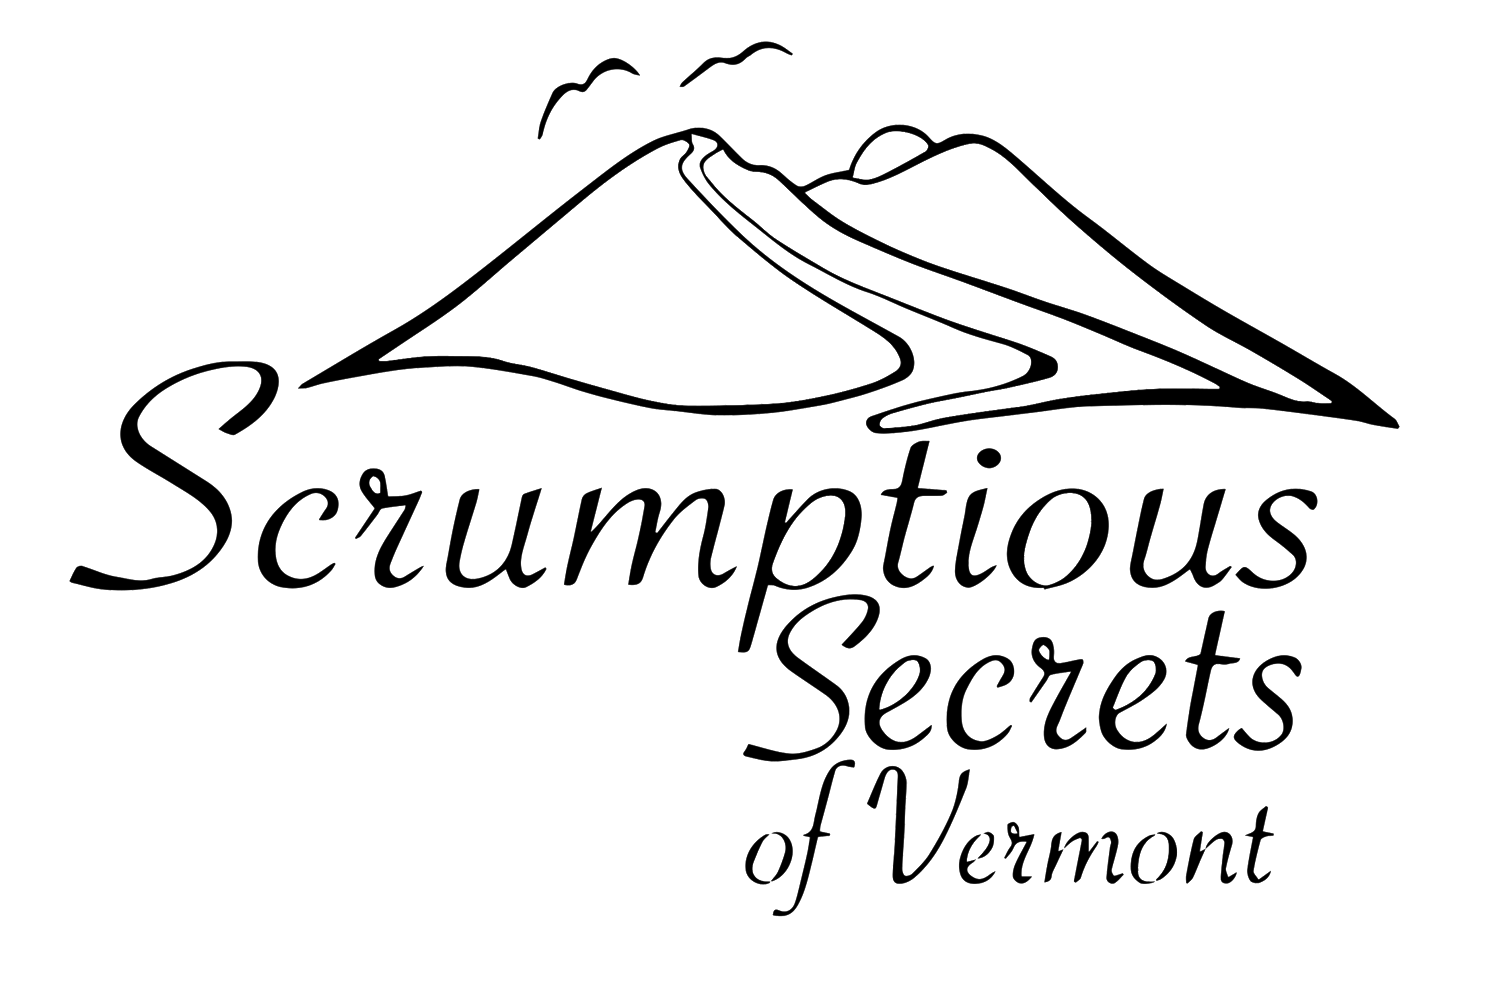 Scrumptious Secrets of Vermont